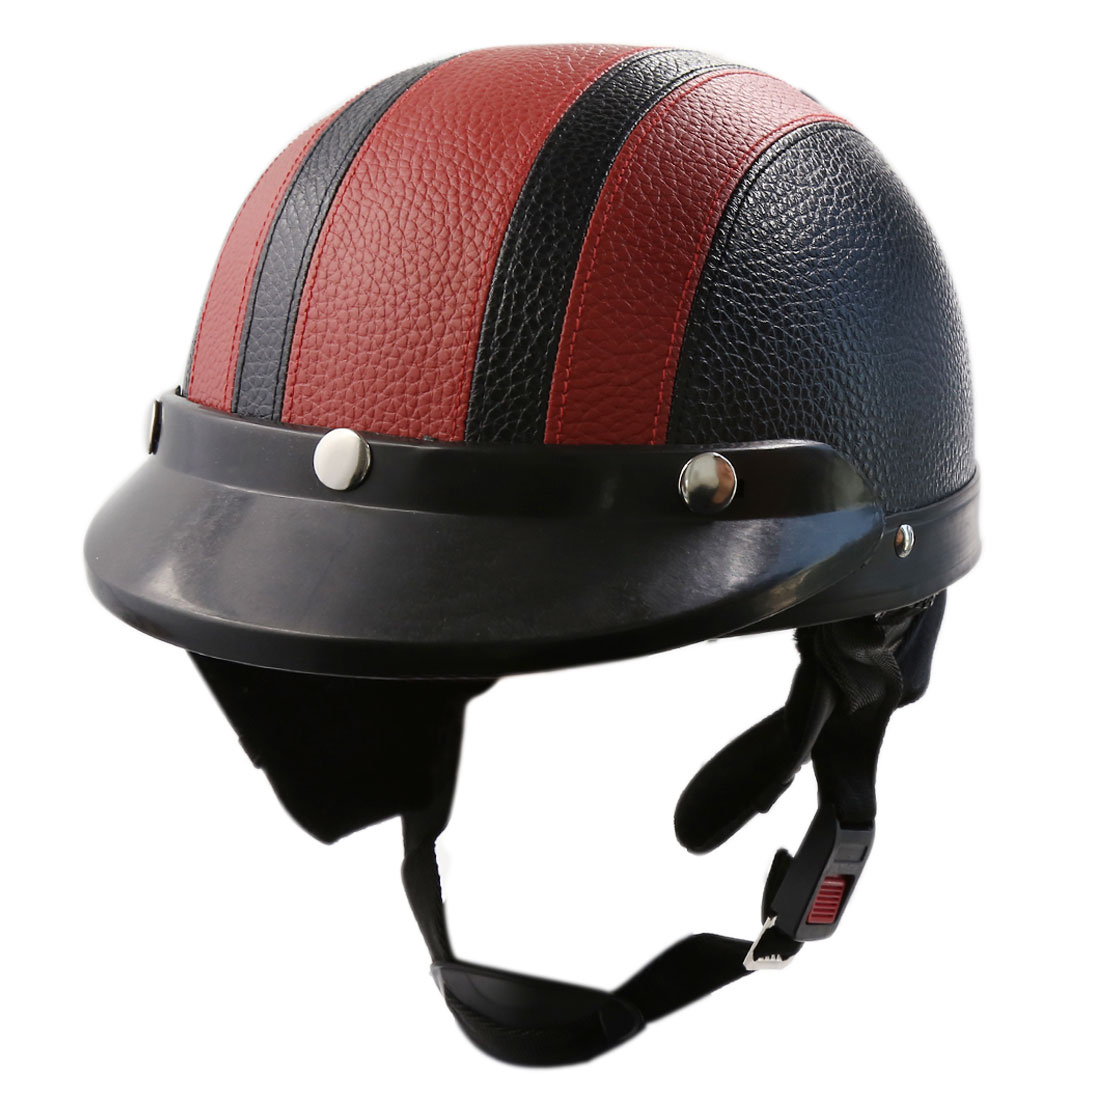 Adjustable Nylon Strap Motorcycle Scooter Safety Helemt Head Protector Black Red